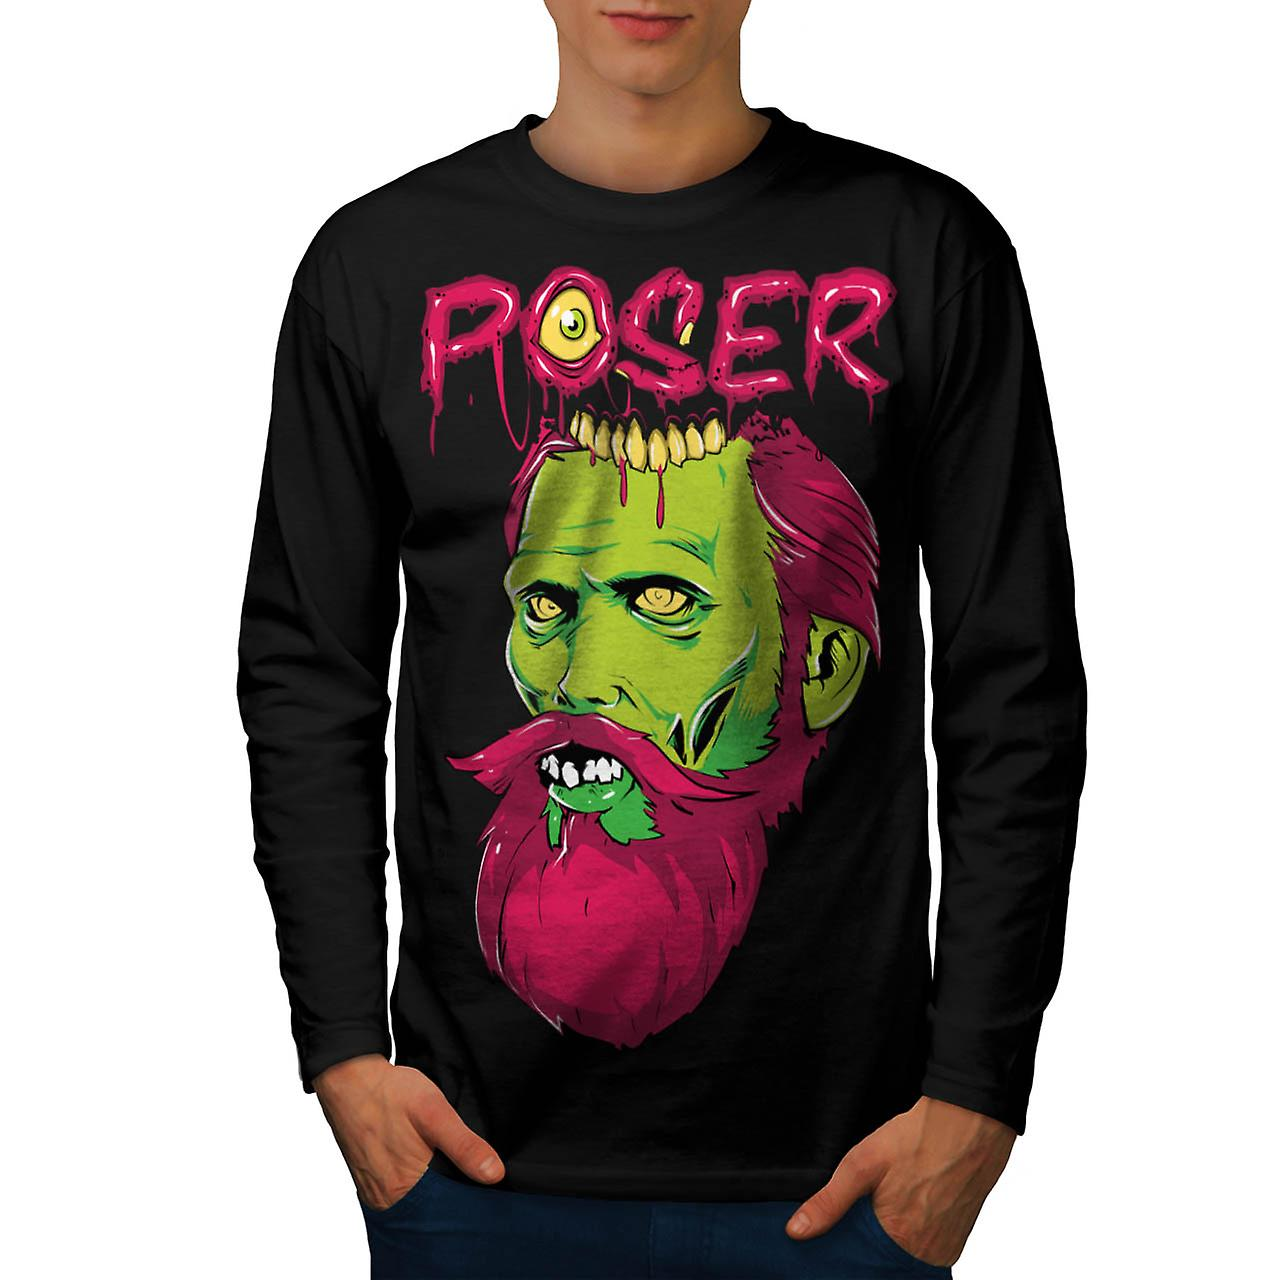 Poser Zombie Undead Dead Beard Men Black Long Sleeve T-shirt | Wellcoda